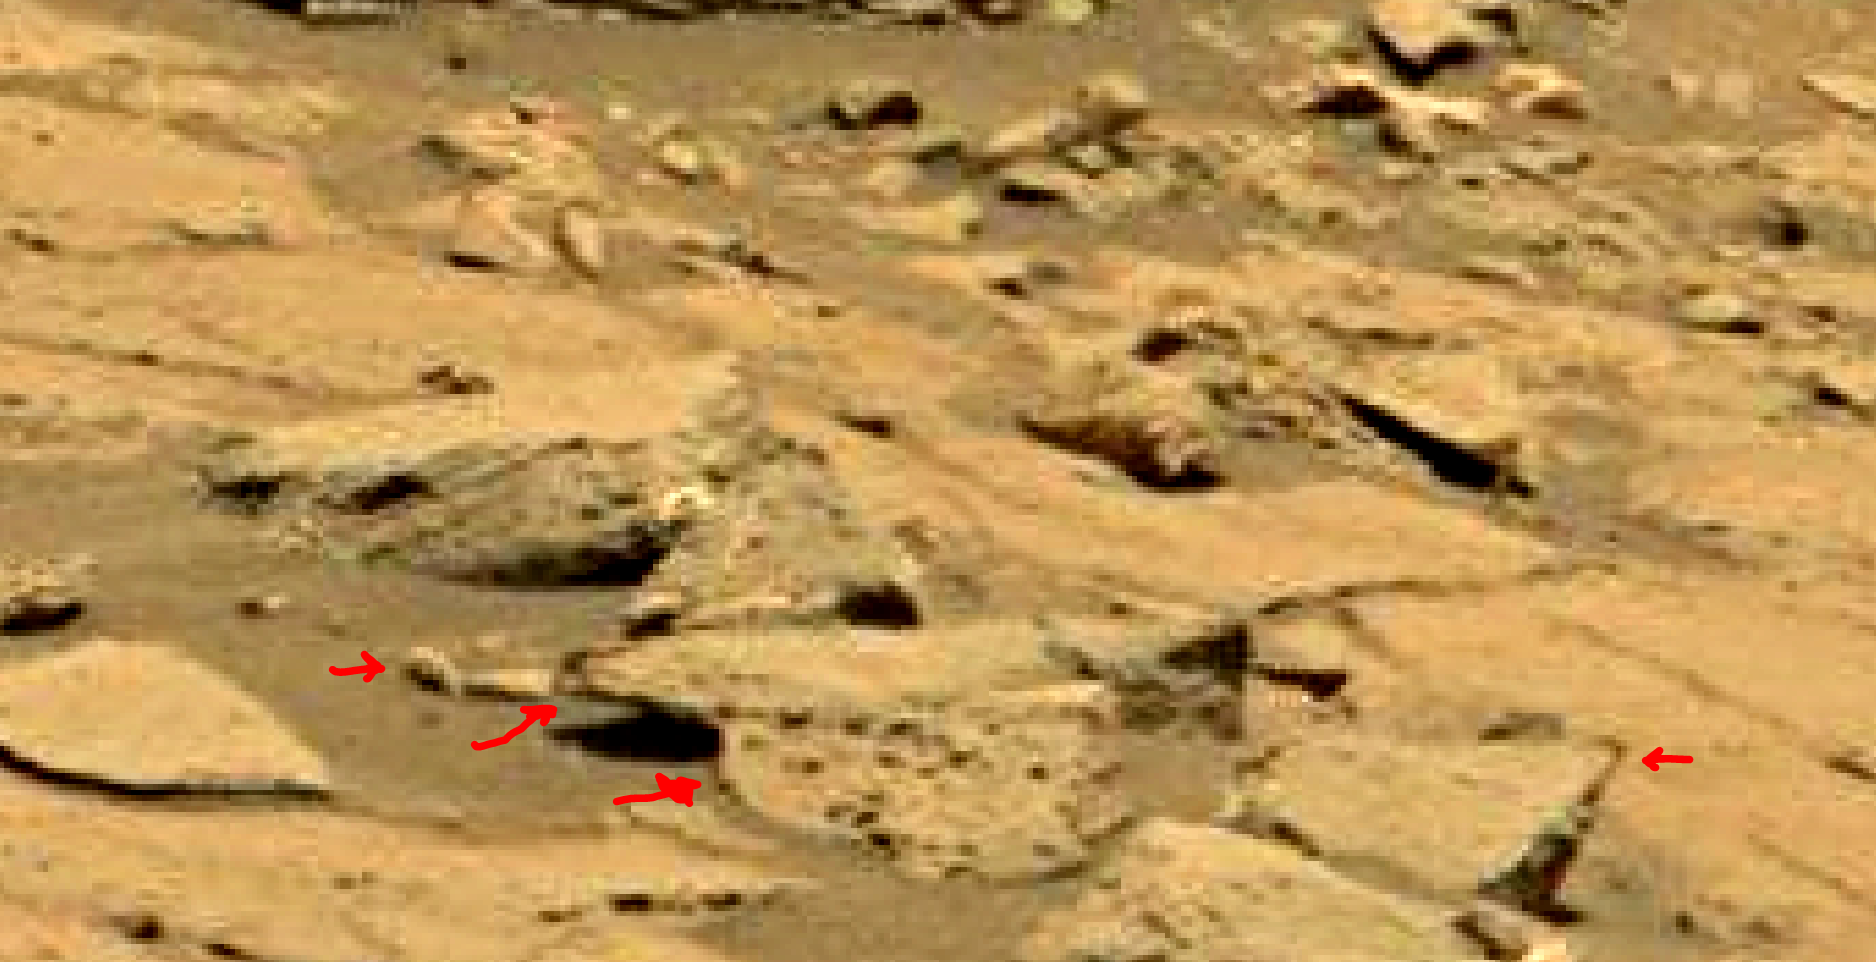 mars sol 1353 anomaly-artifacts 58a3 was life on mars